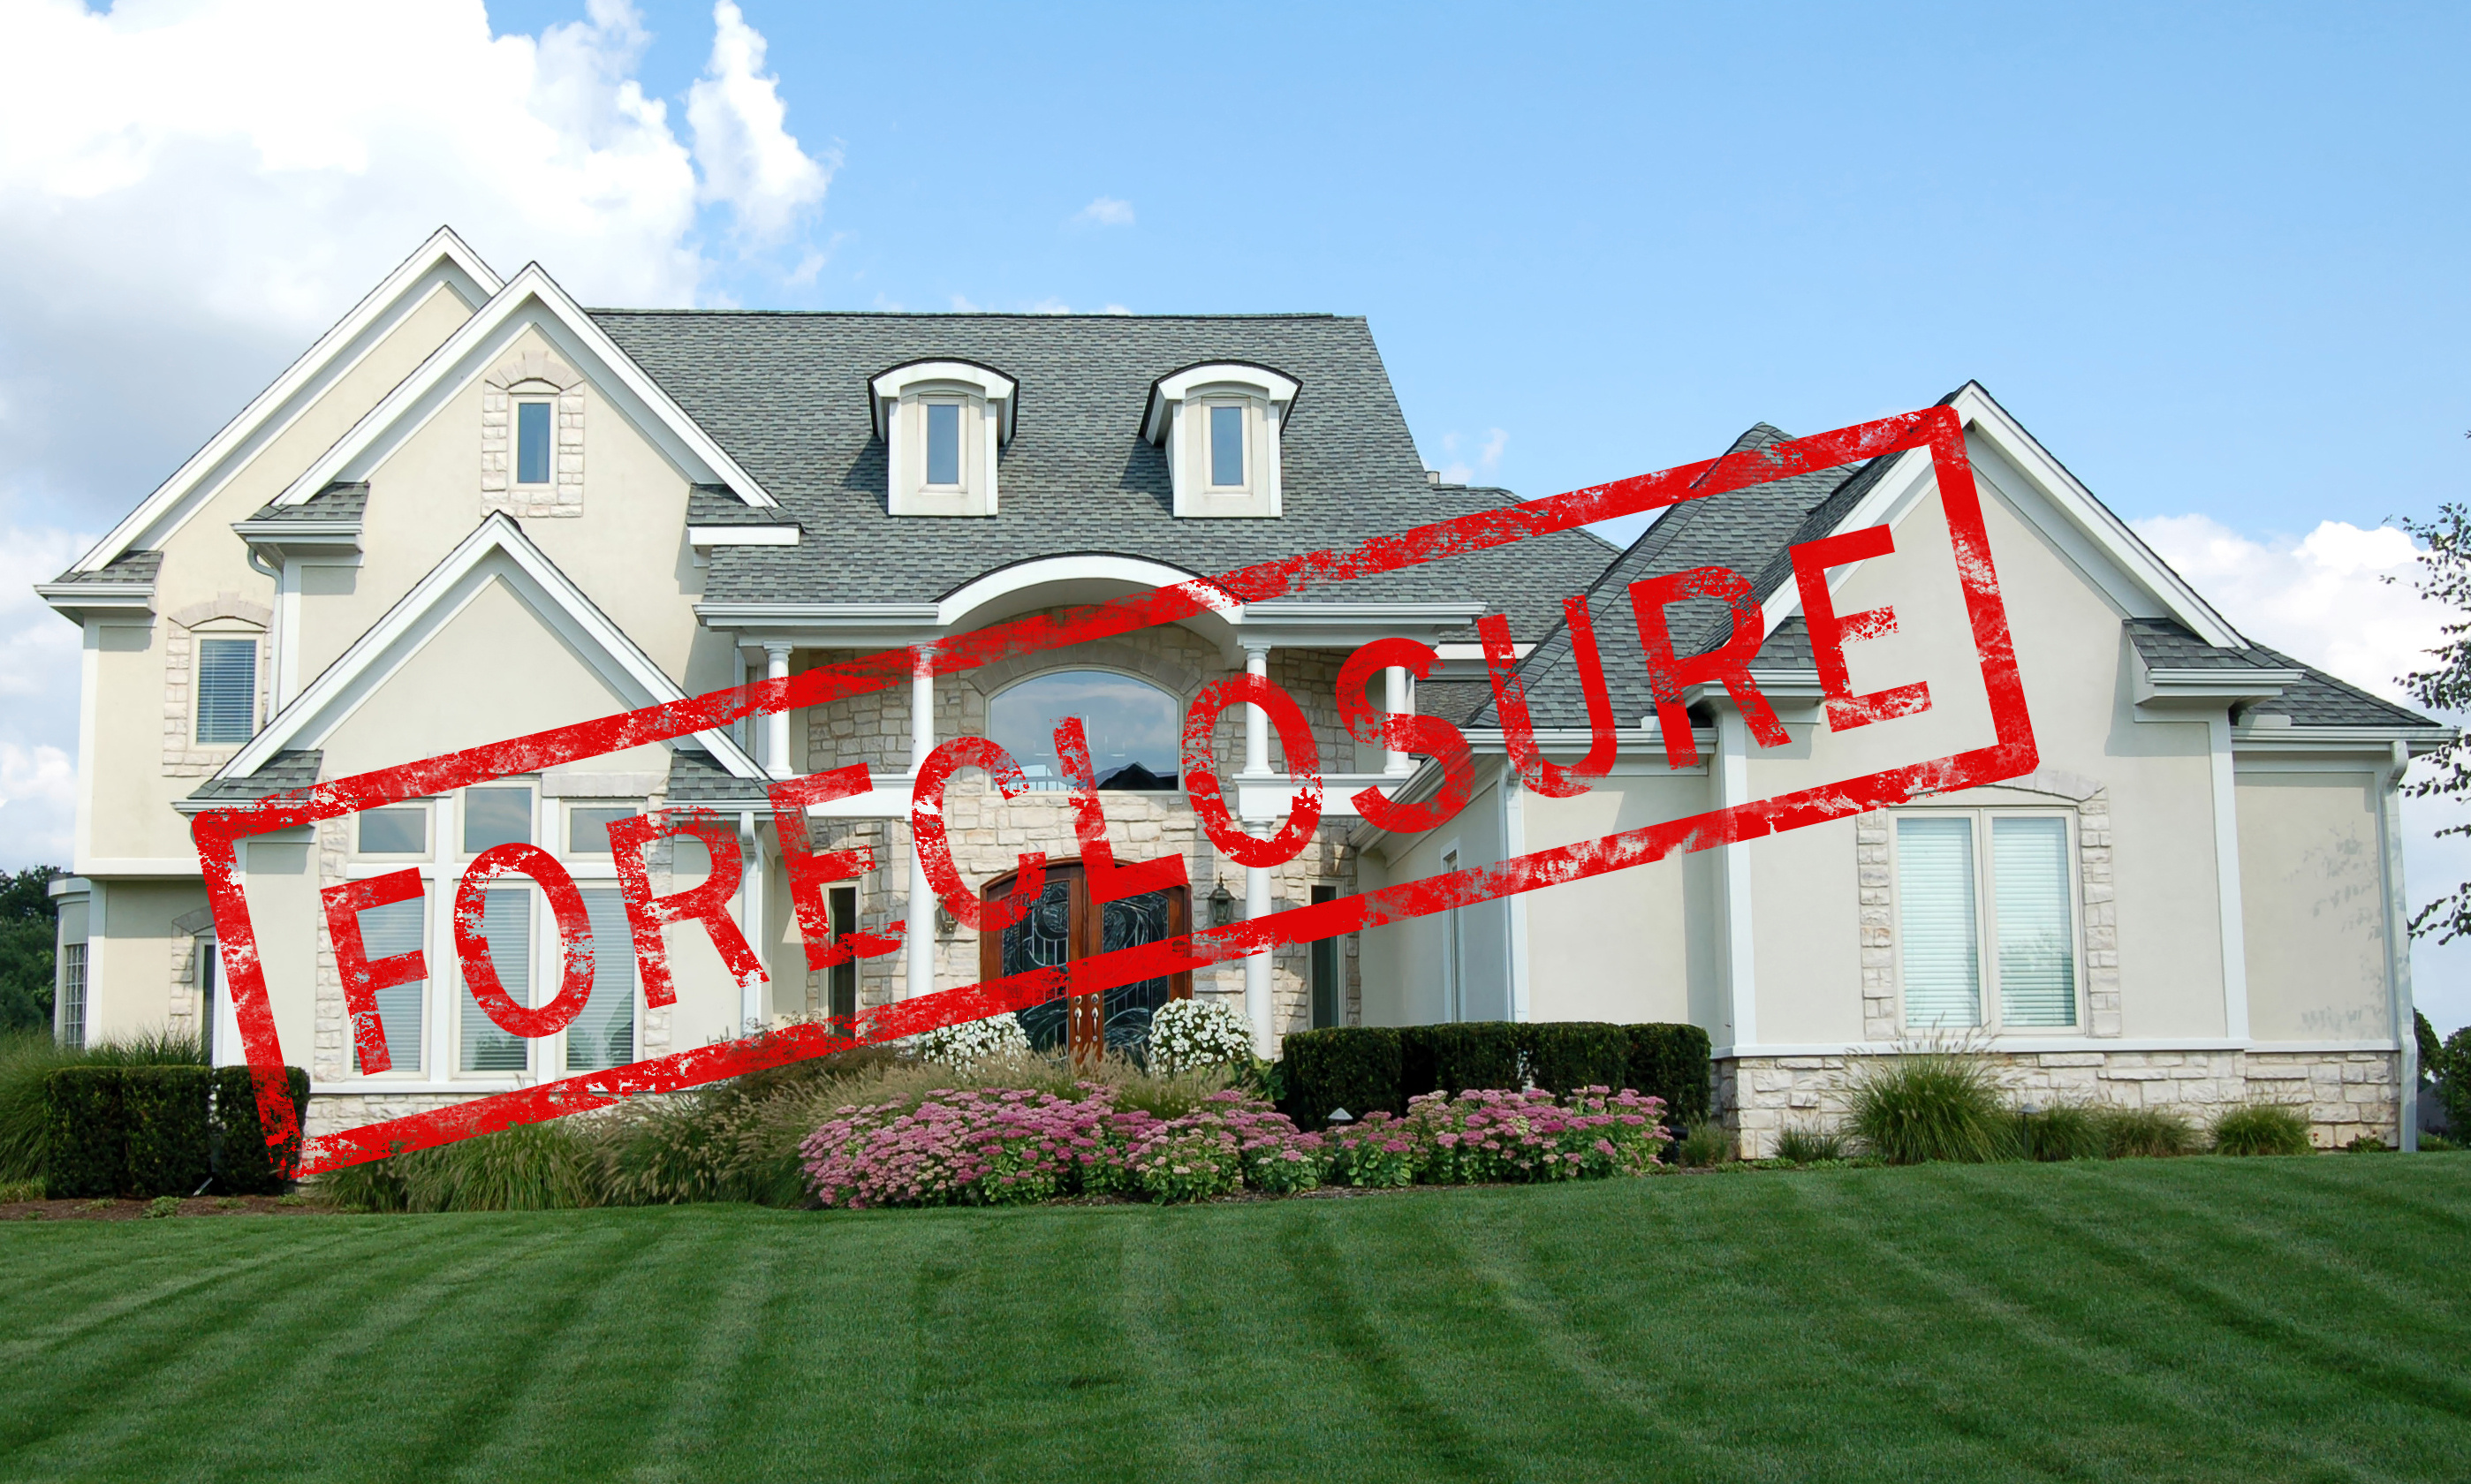 Call Wenzel Appraisal Services, Inc. when you need valuations regarding Ventura foreclosures